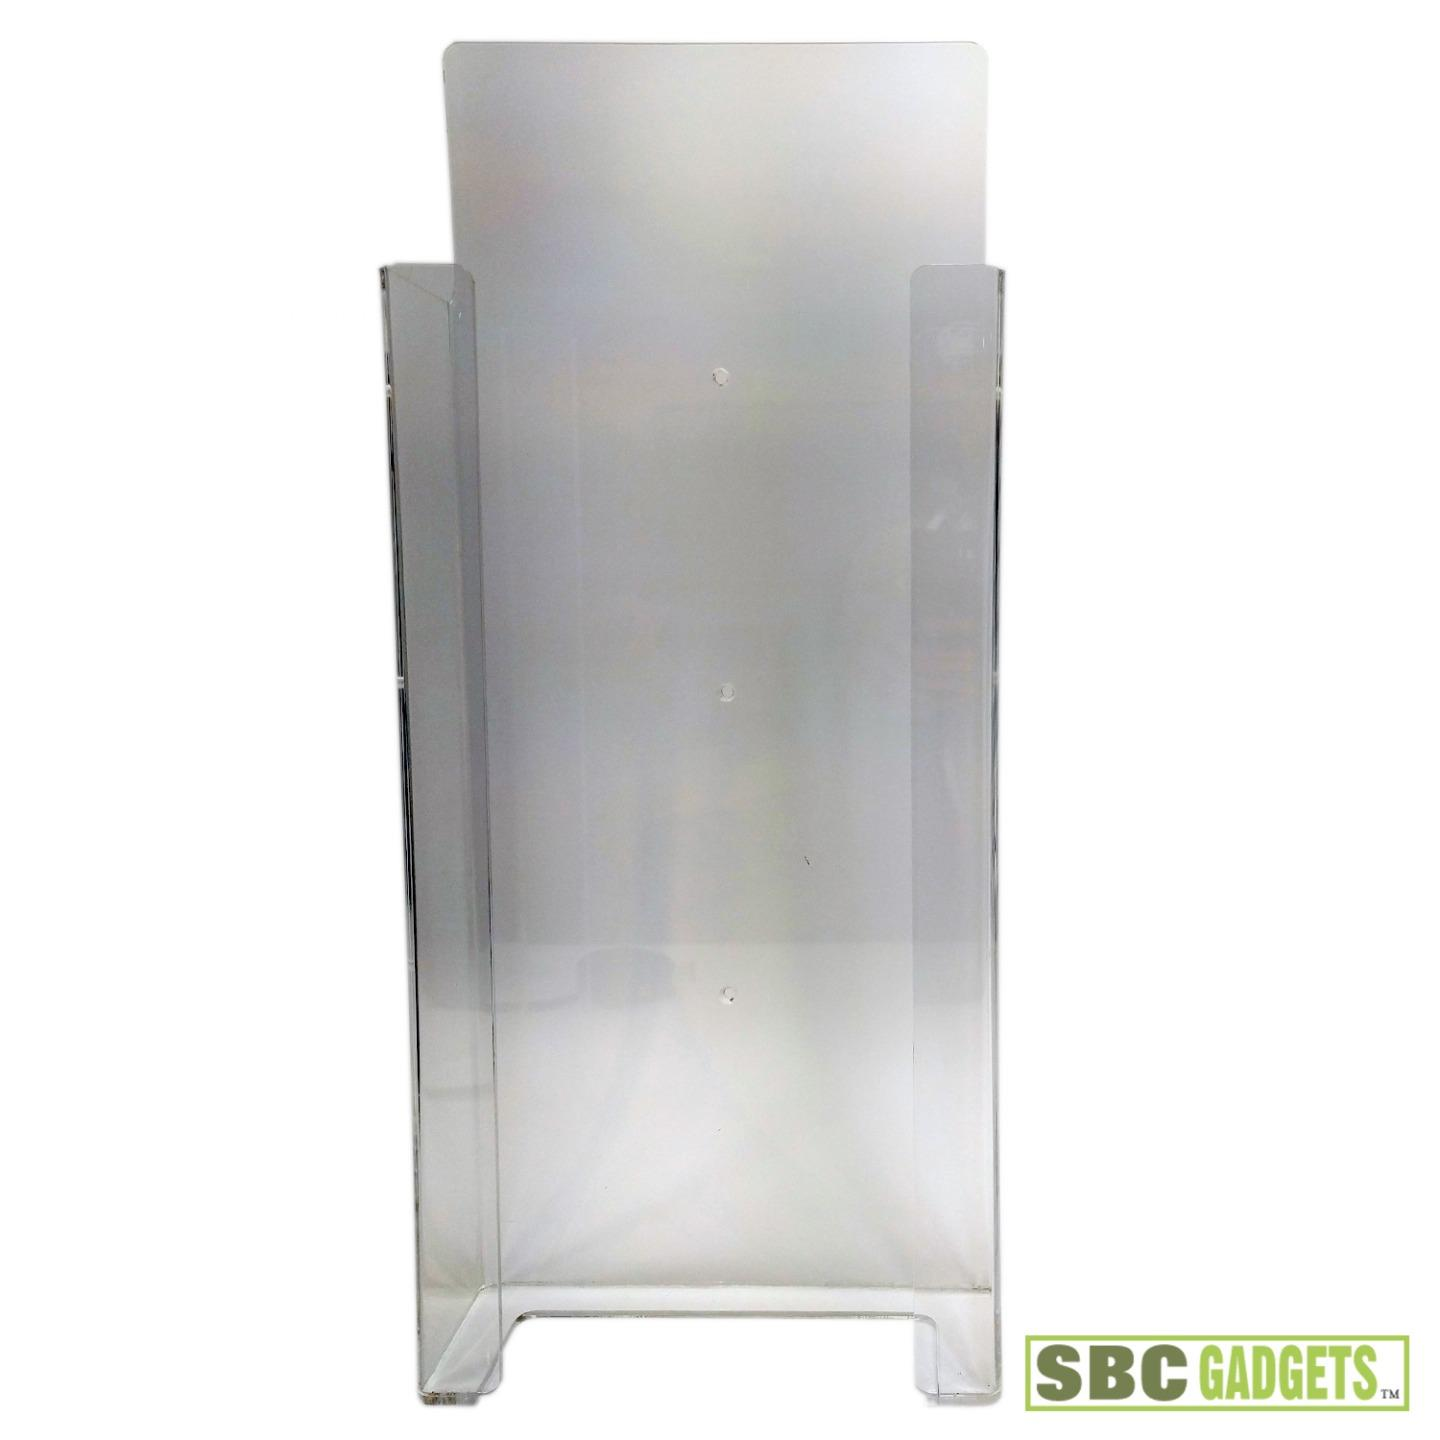 Acrylic Box To Hang On Wall : Medical clear acrylic wall mounted dispenser holder